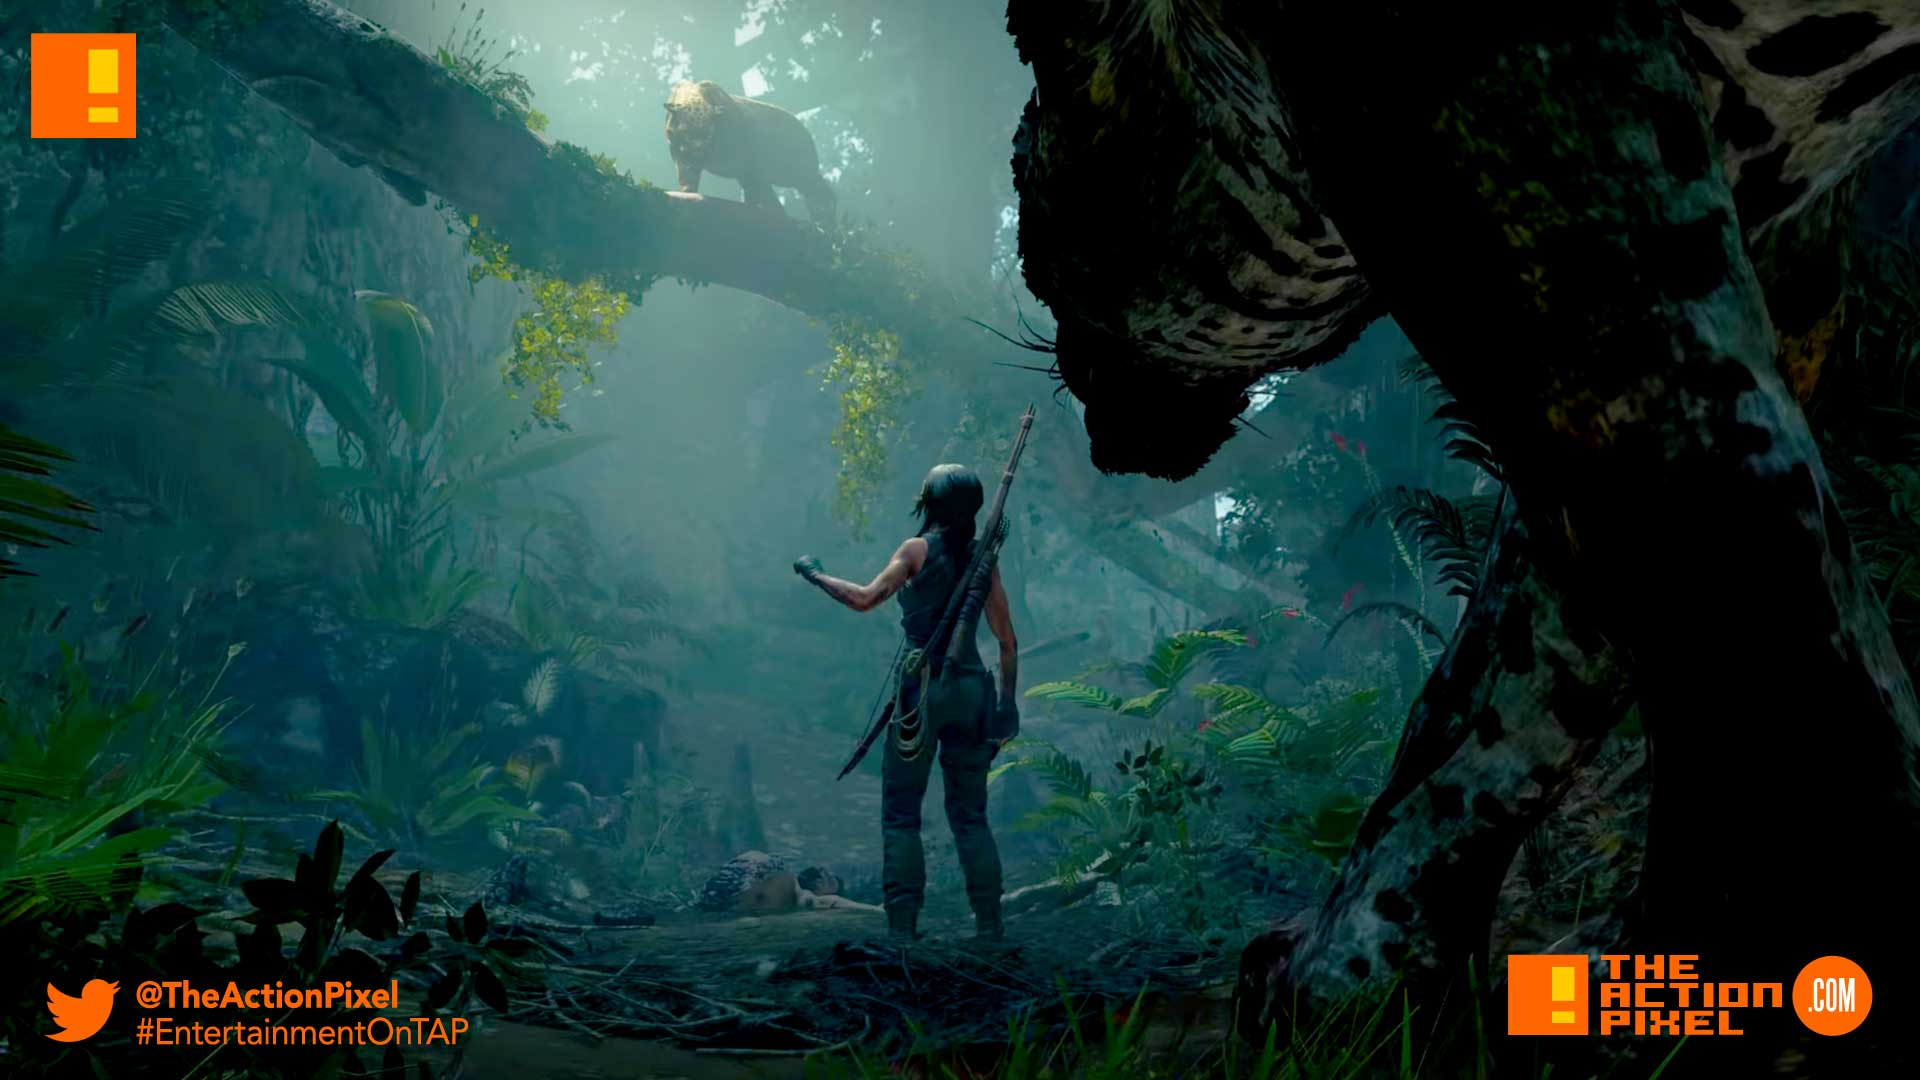 Shadow of the Tomb Raider ,Louder than Words, e3 expo 2018, e3, eidos montreal , crystal dynamics, lara croft, tomb raider, trailer, gameplay, gameplay trailer , the action pixel, entertainment on tap, one with the jungle,